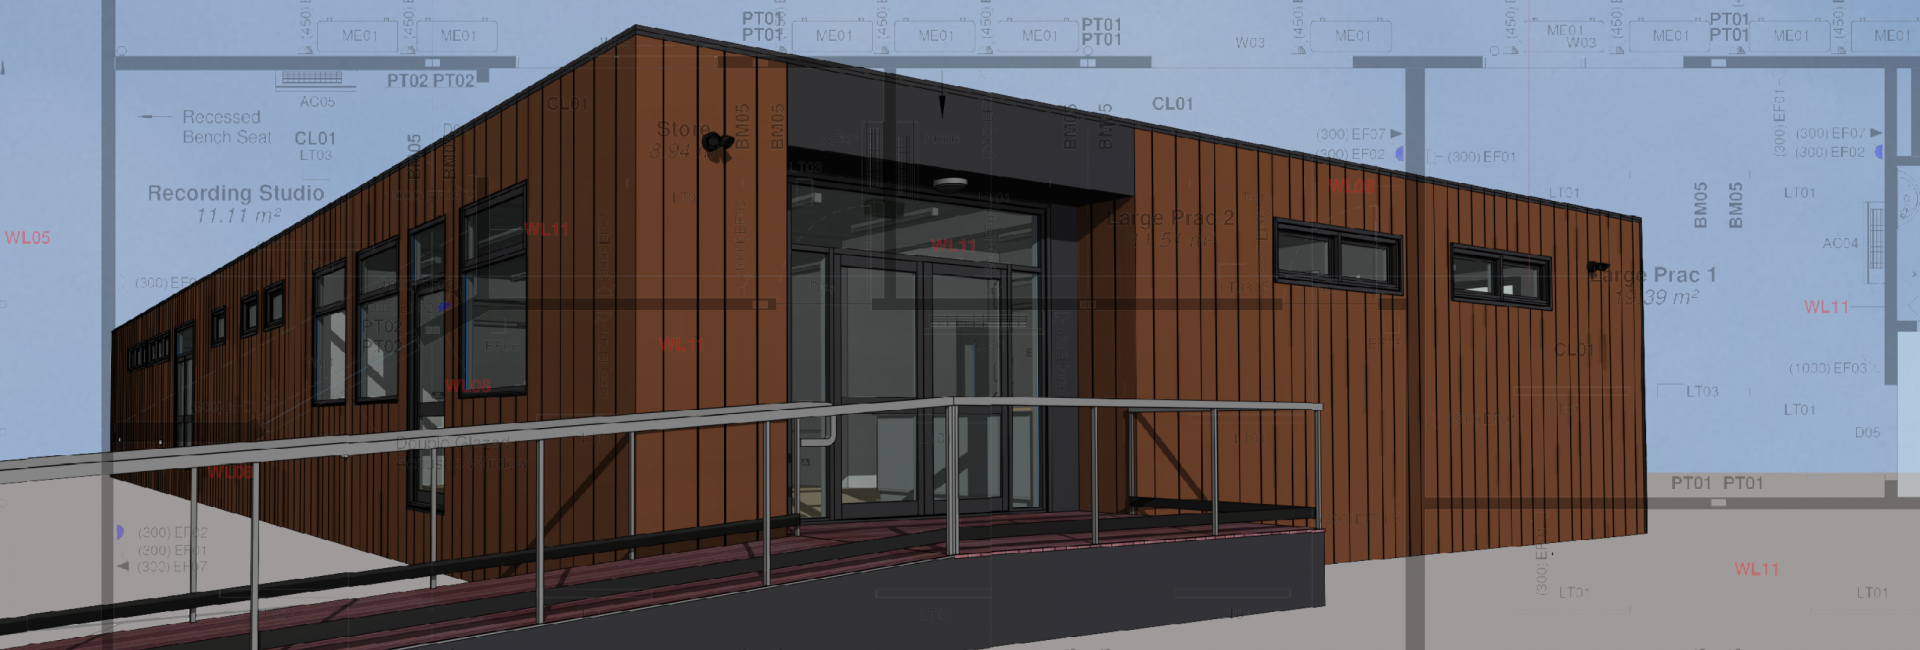 New music building for tabor